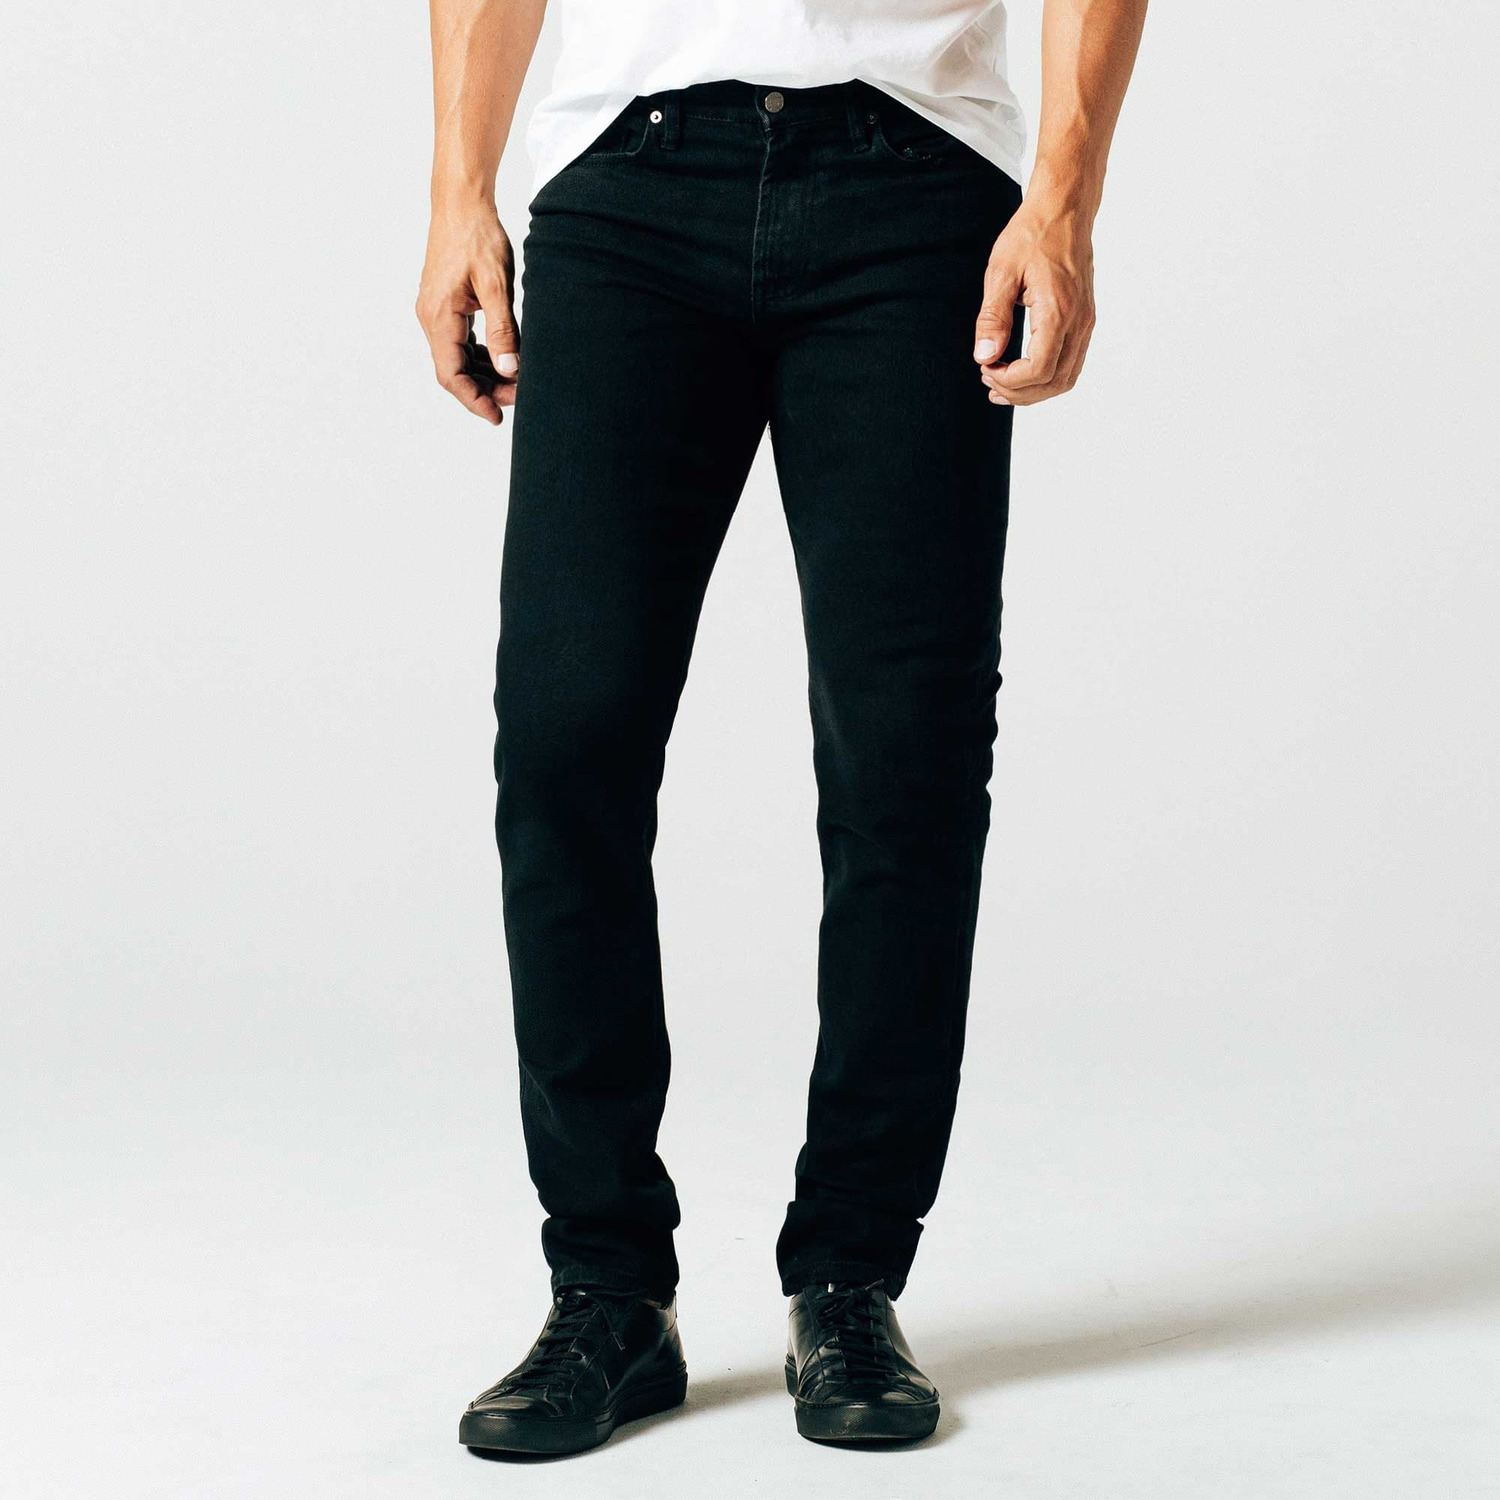 Skinny-Slim Jeans in Jet Black